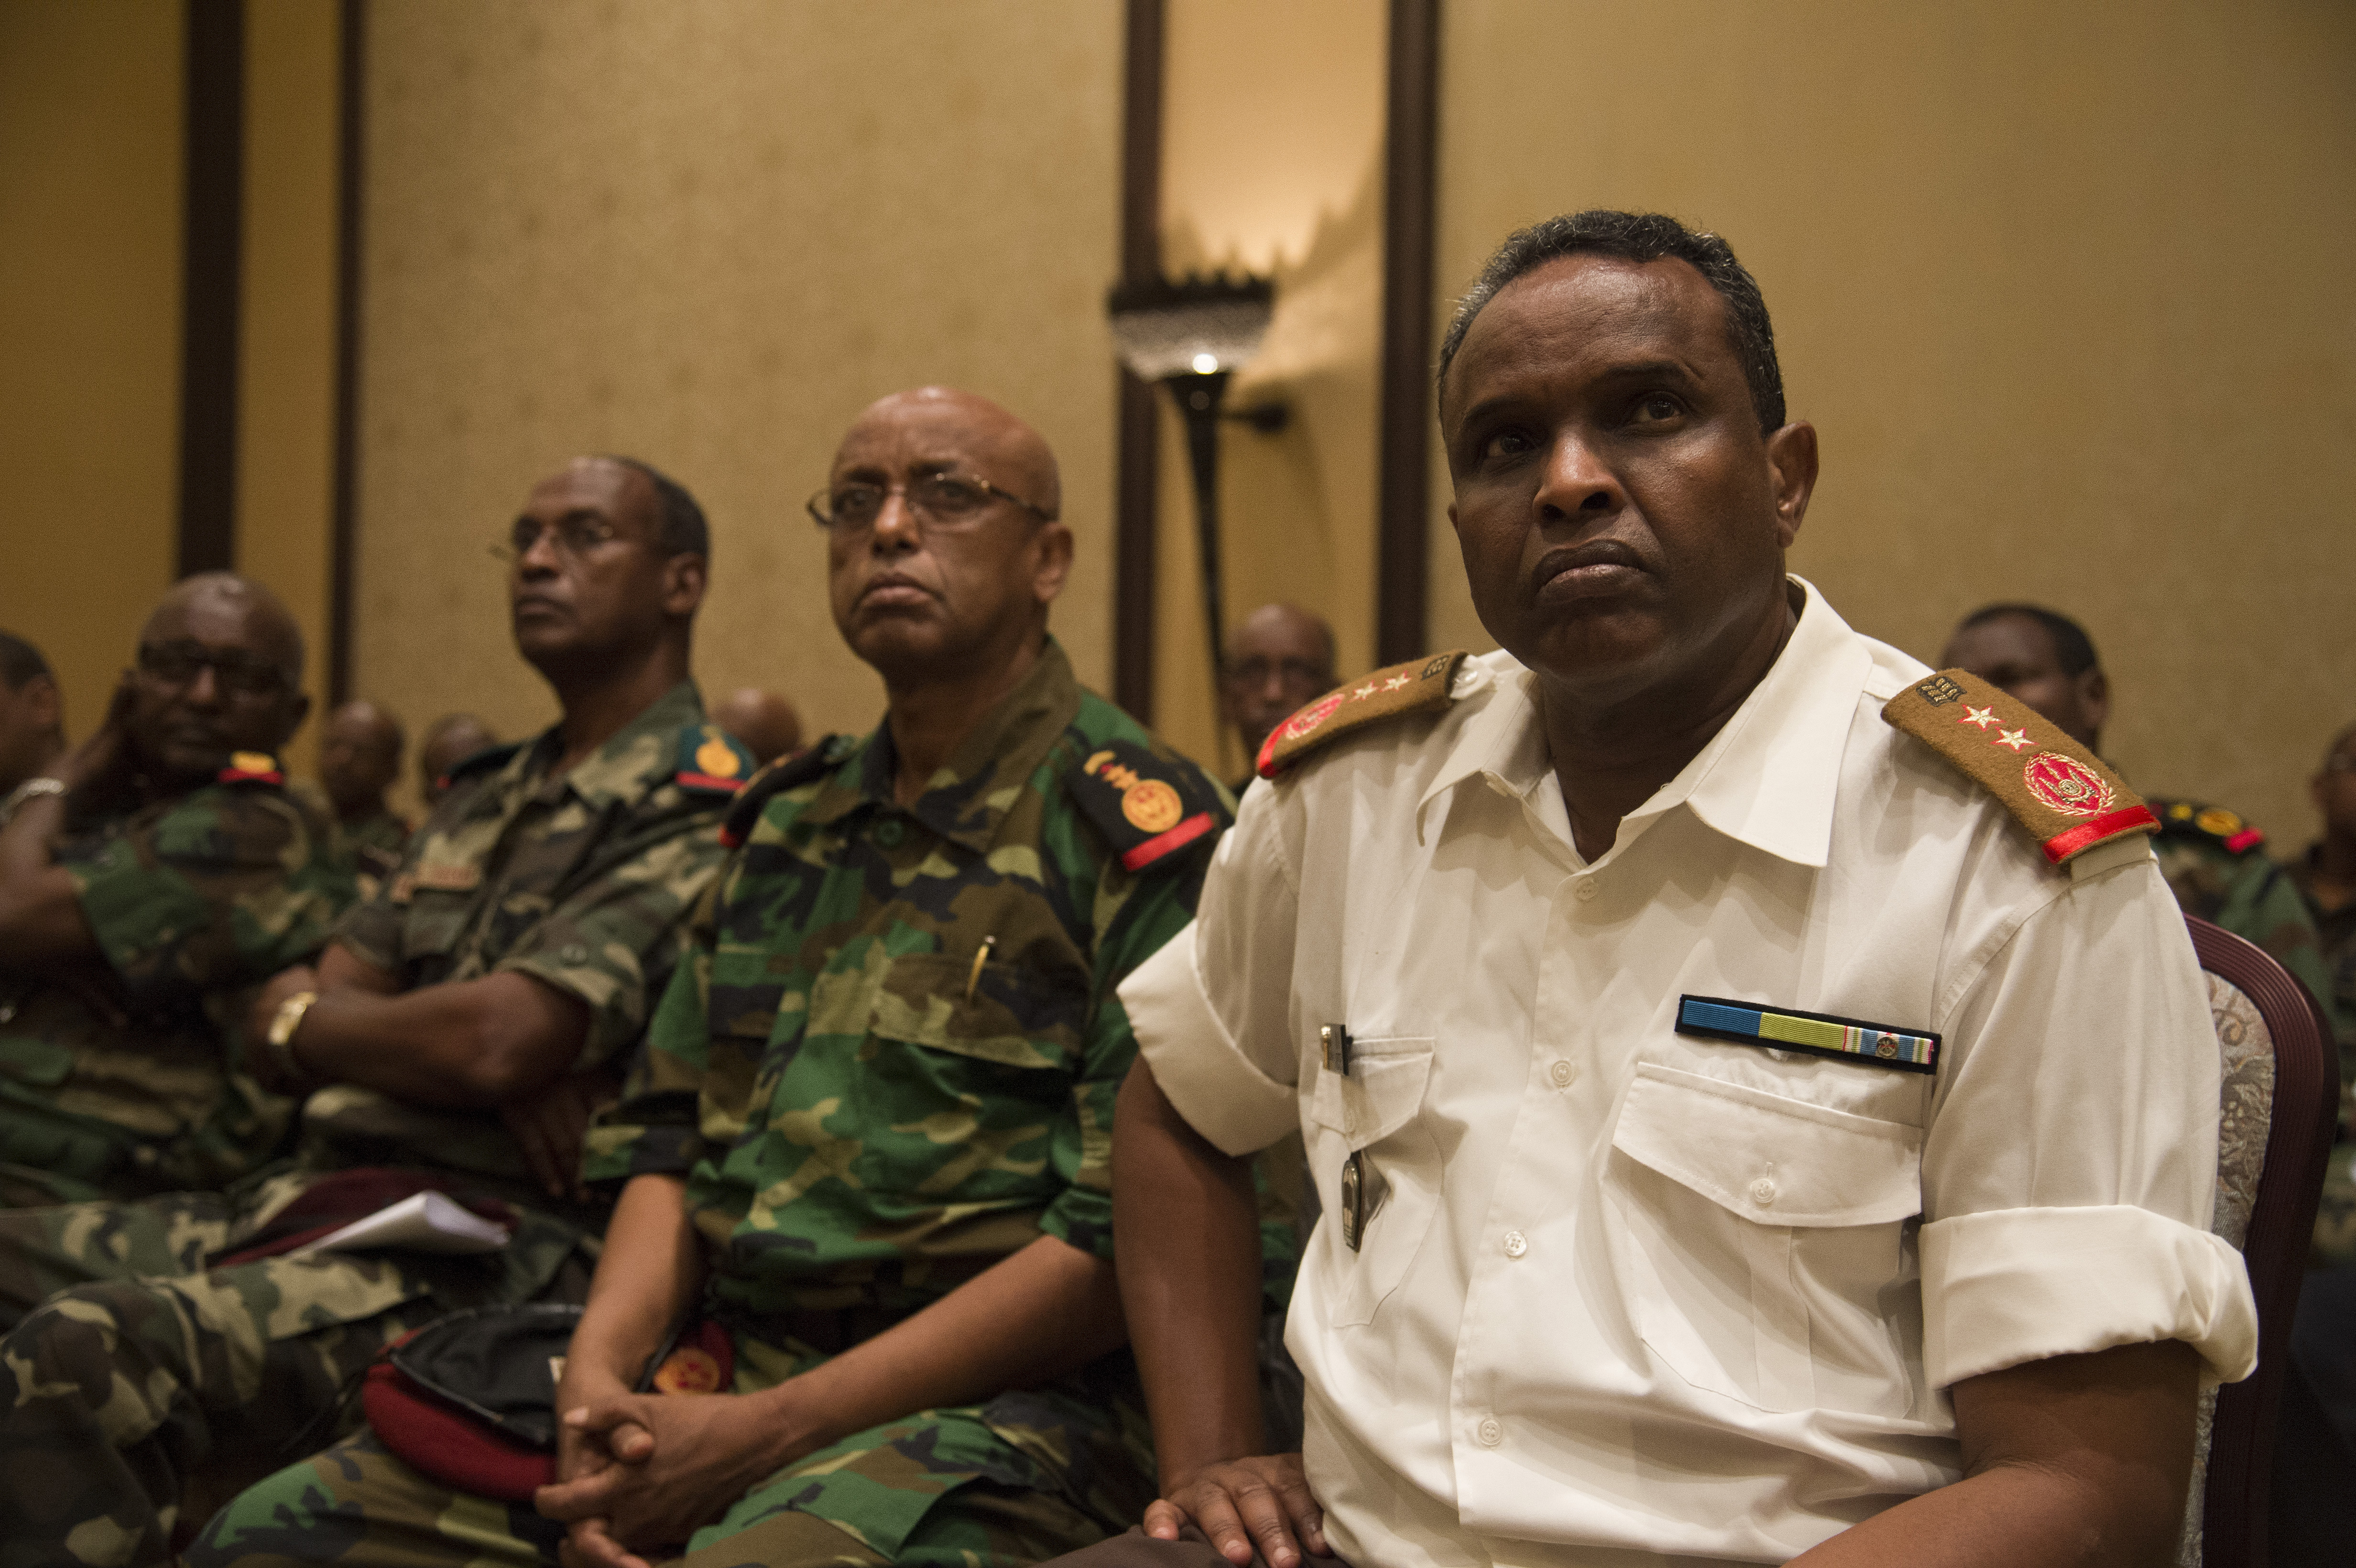 Representatives of the Djiboutian Armed Forces (FAD) attend the Kentucky National Guard and FAD State Partnership Program agreement signing ceremony at the Kempinski Hotel, Djibouti, June 2, 2015. The Republic of Djibouti is the 11th African country to join a SPP and the first in East Africa. (U.S. Air Force photo by Staff Sgt. Nathan Maysonet)